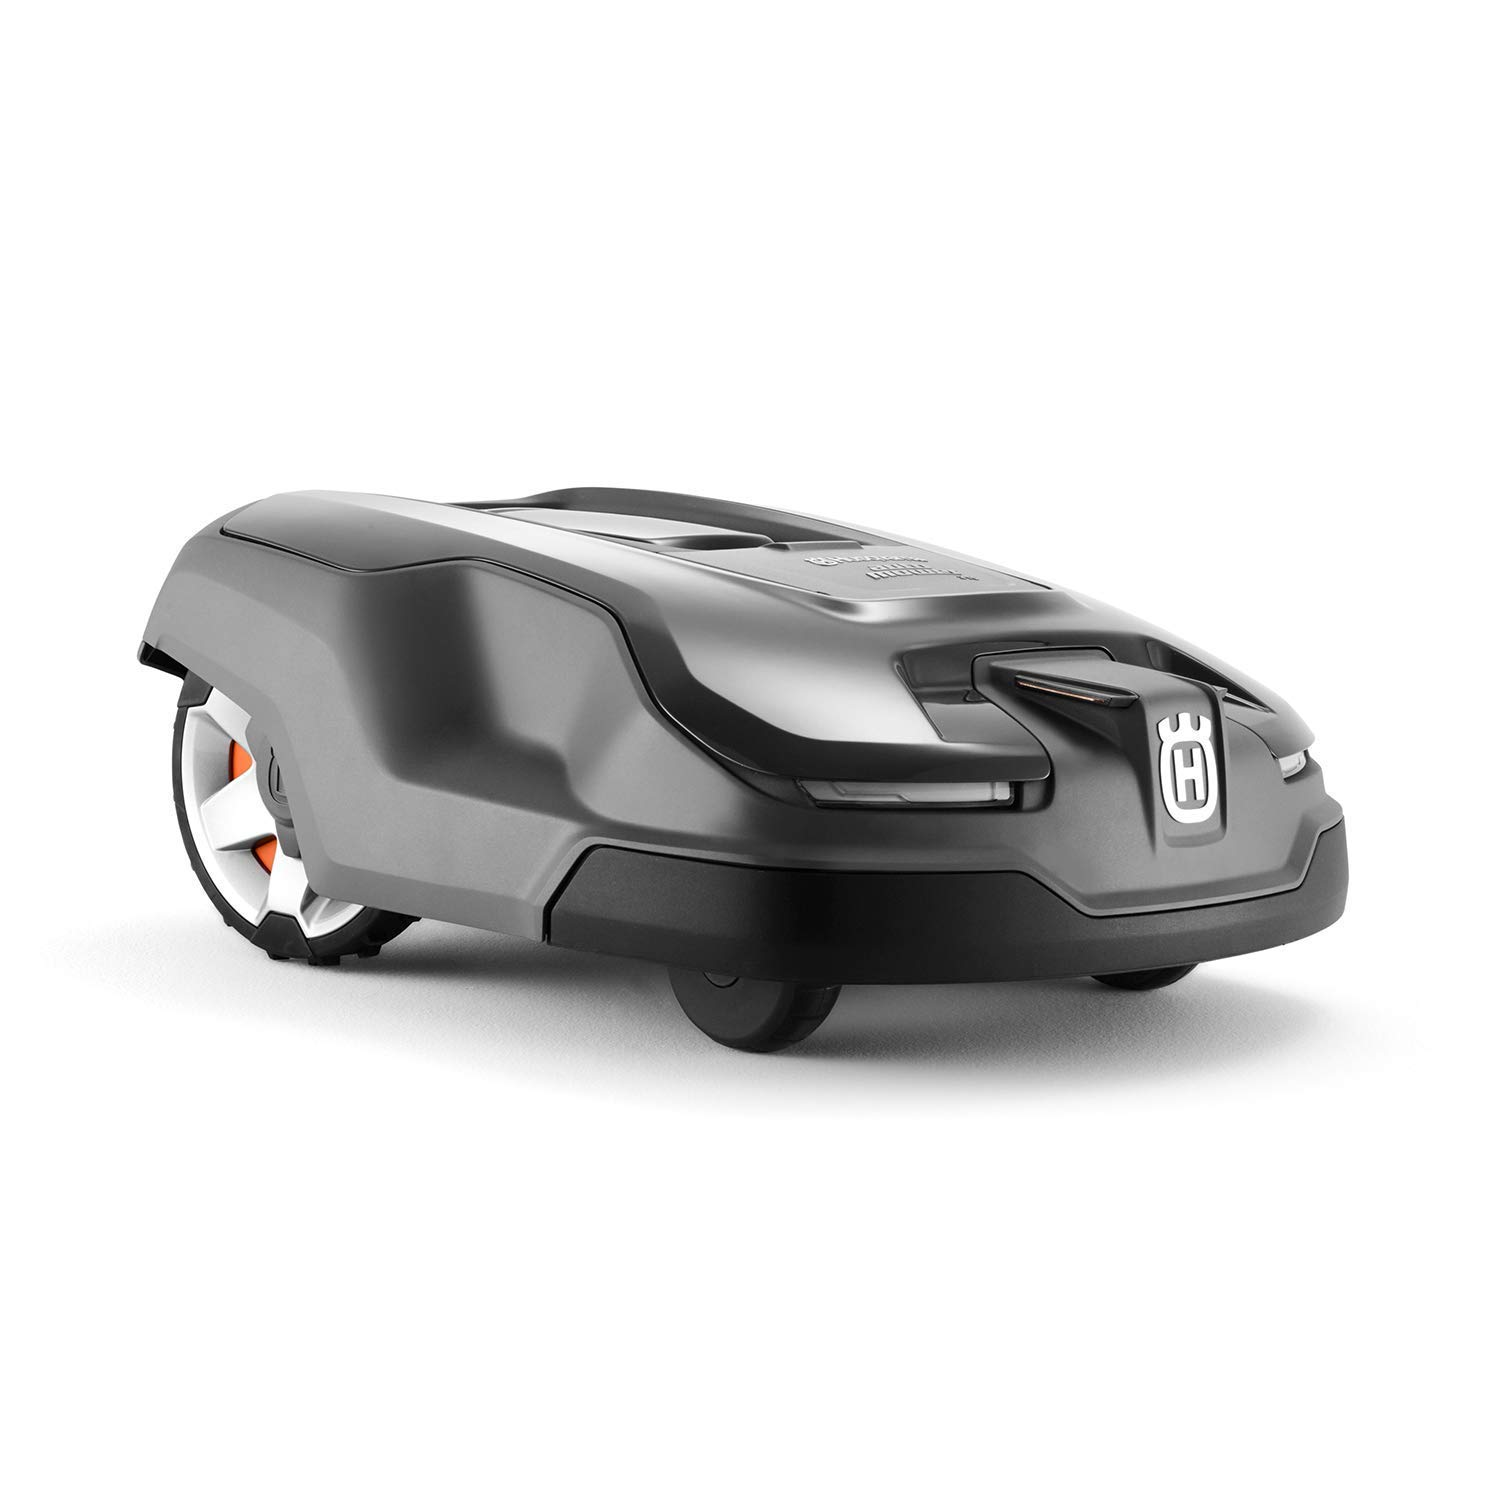 Husqvarna Robotic Lawn Mower Reviews